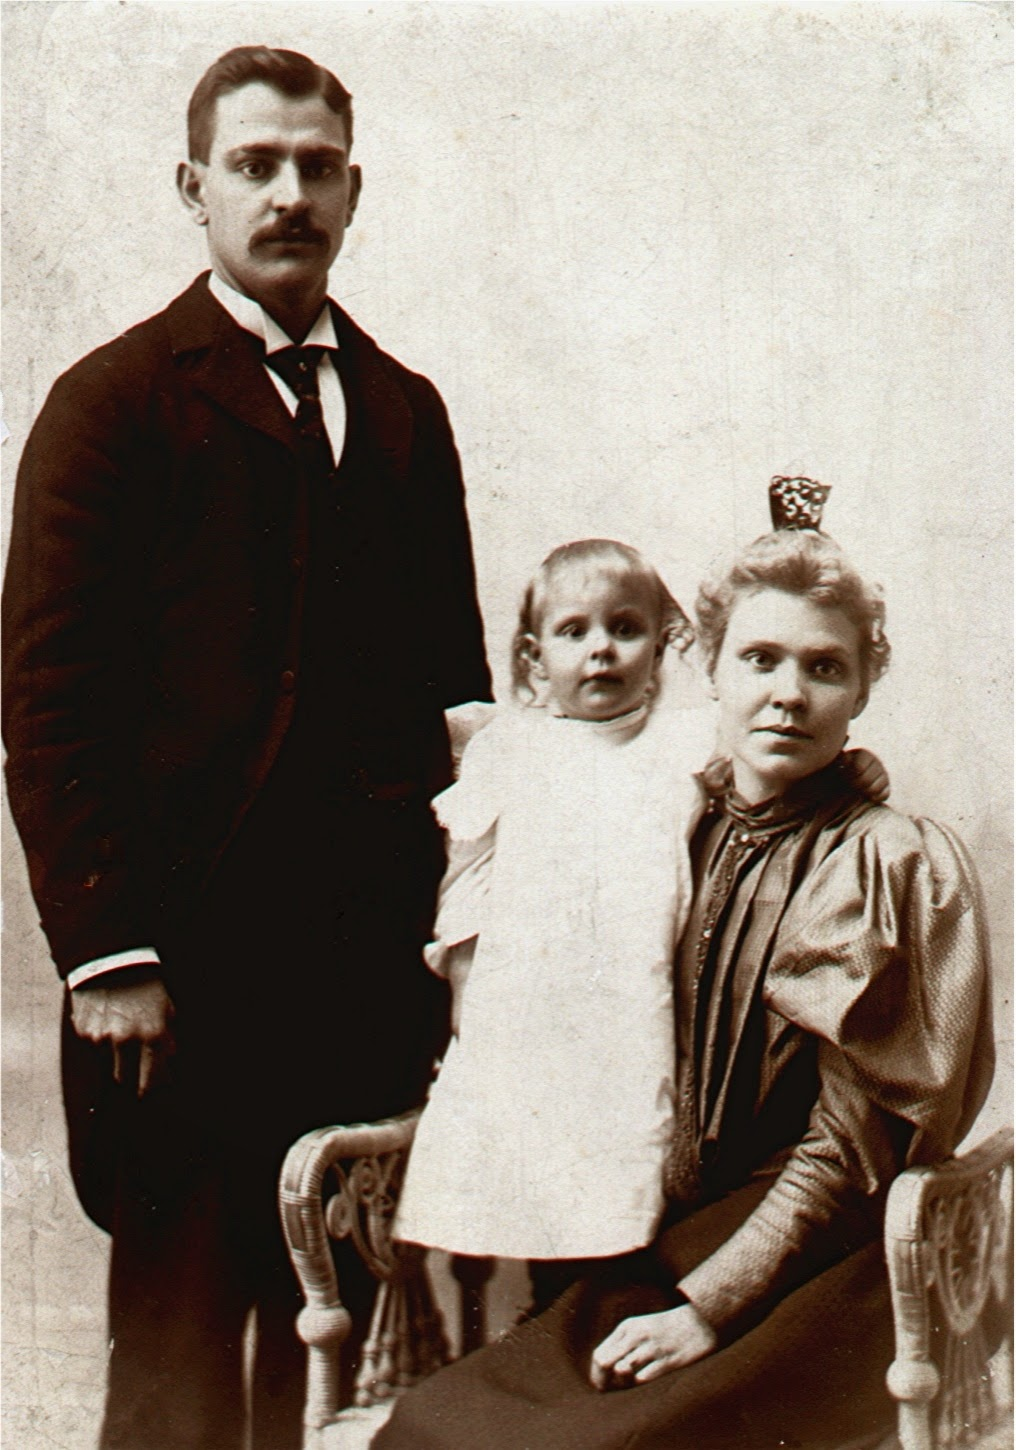 Frank, Ethel and Fannie Clark